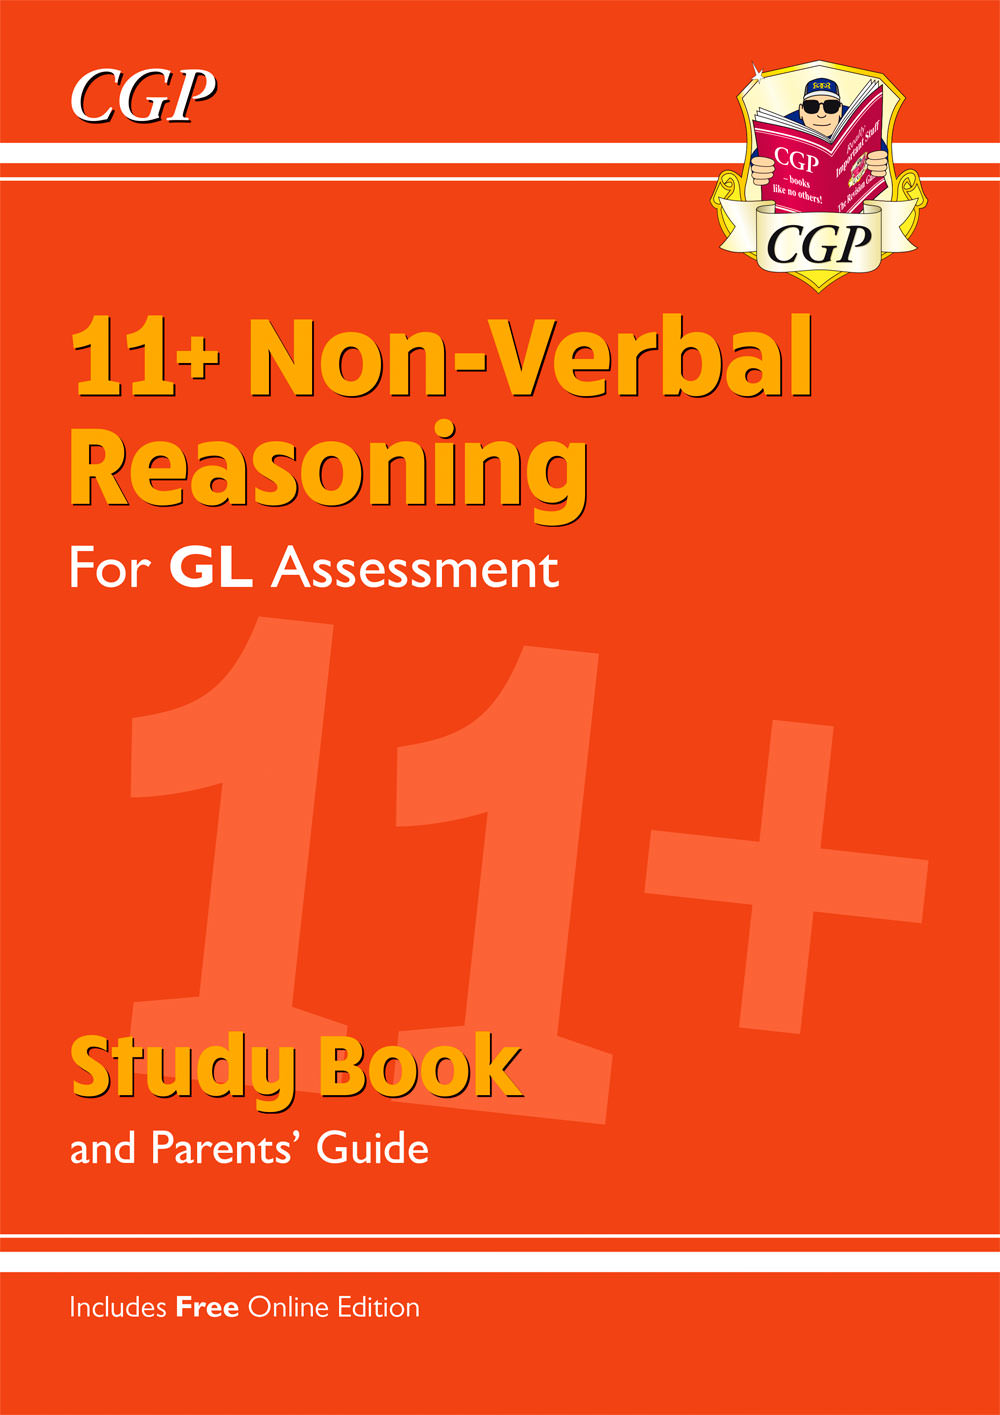 NHRE2 - 11+ GL Non-Verbal Reasoning Study Book (with Parents' Guide & Online Edition)